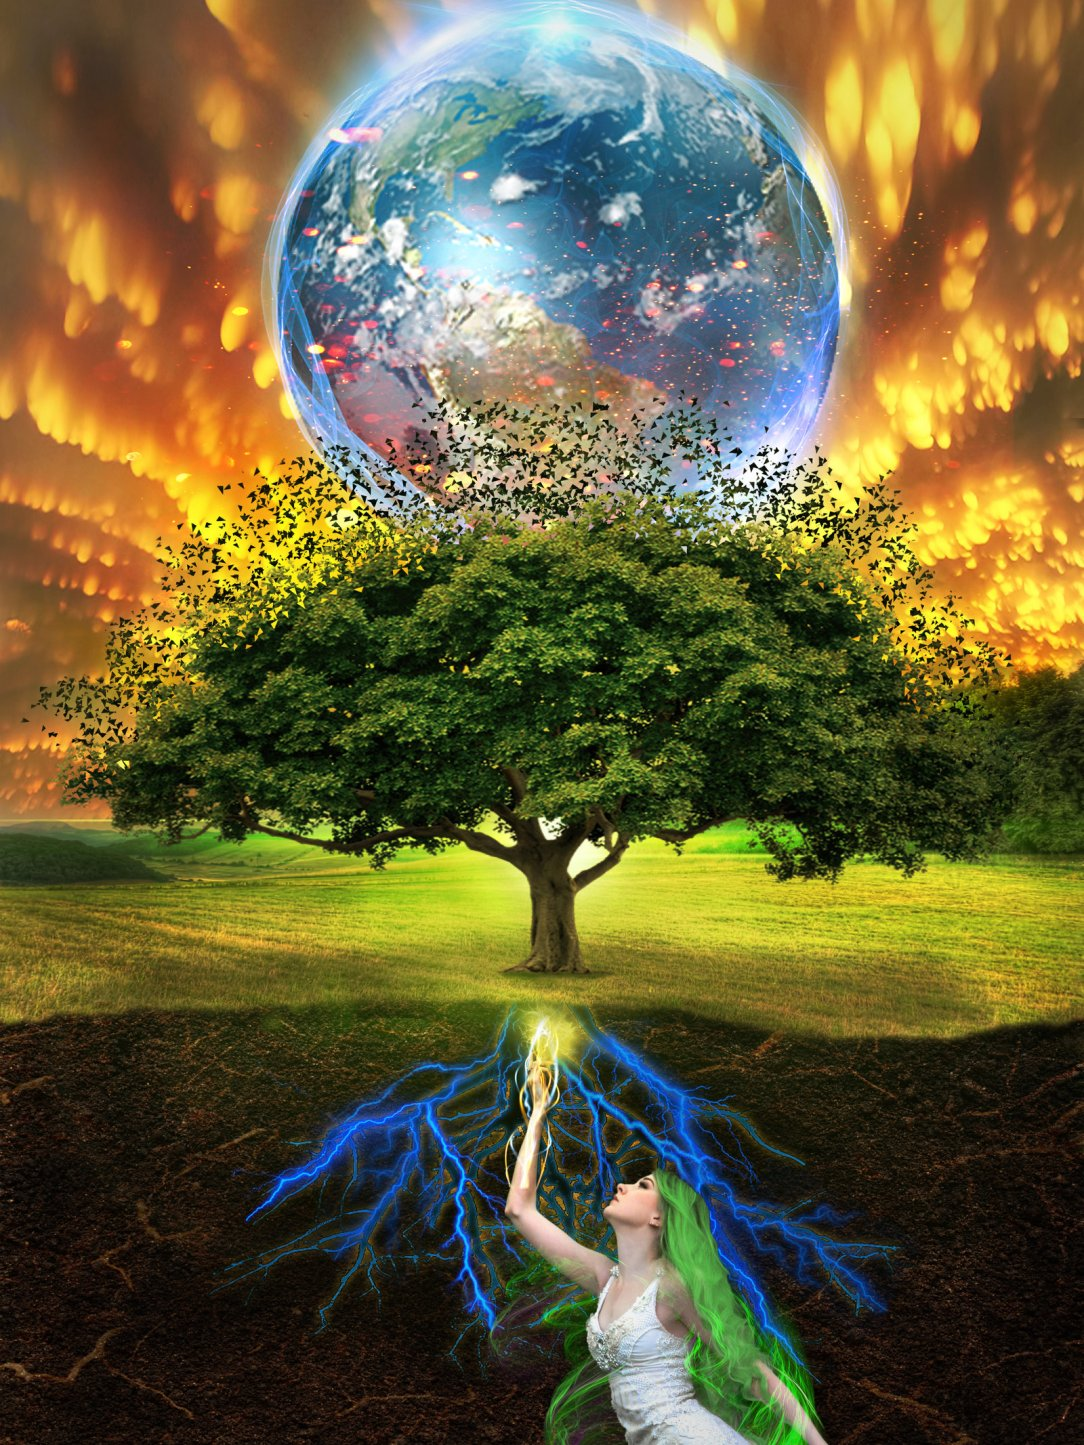 Her tree of life